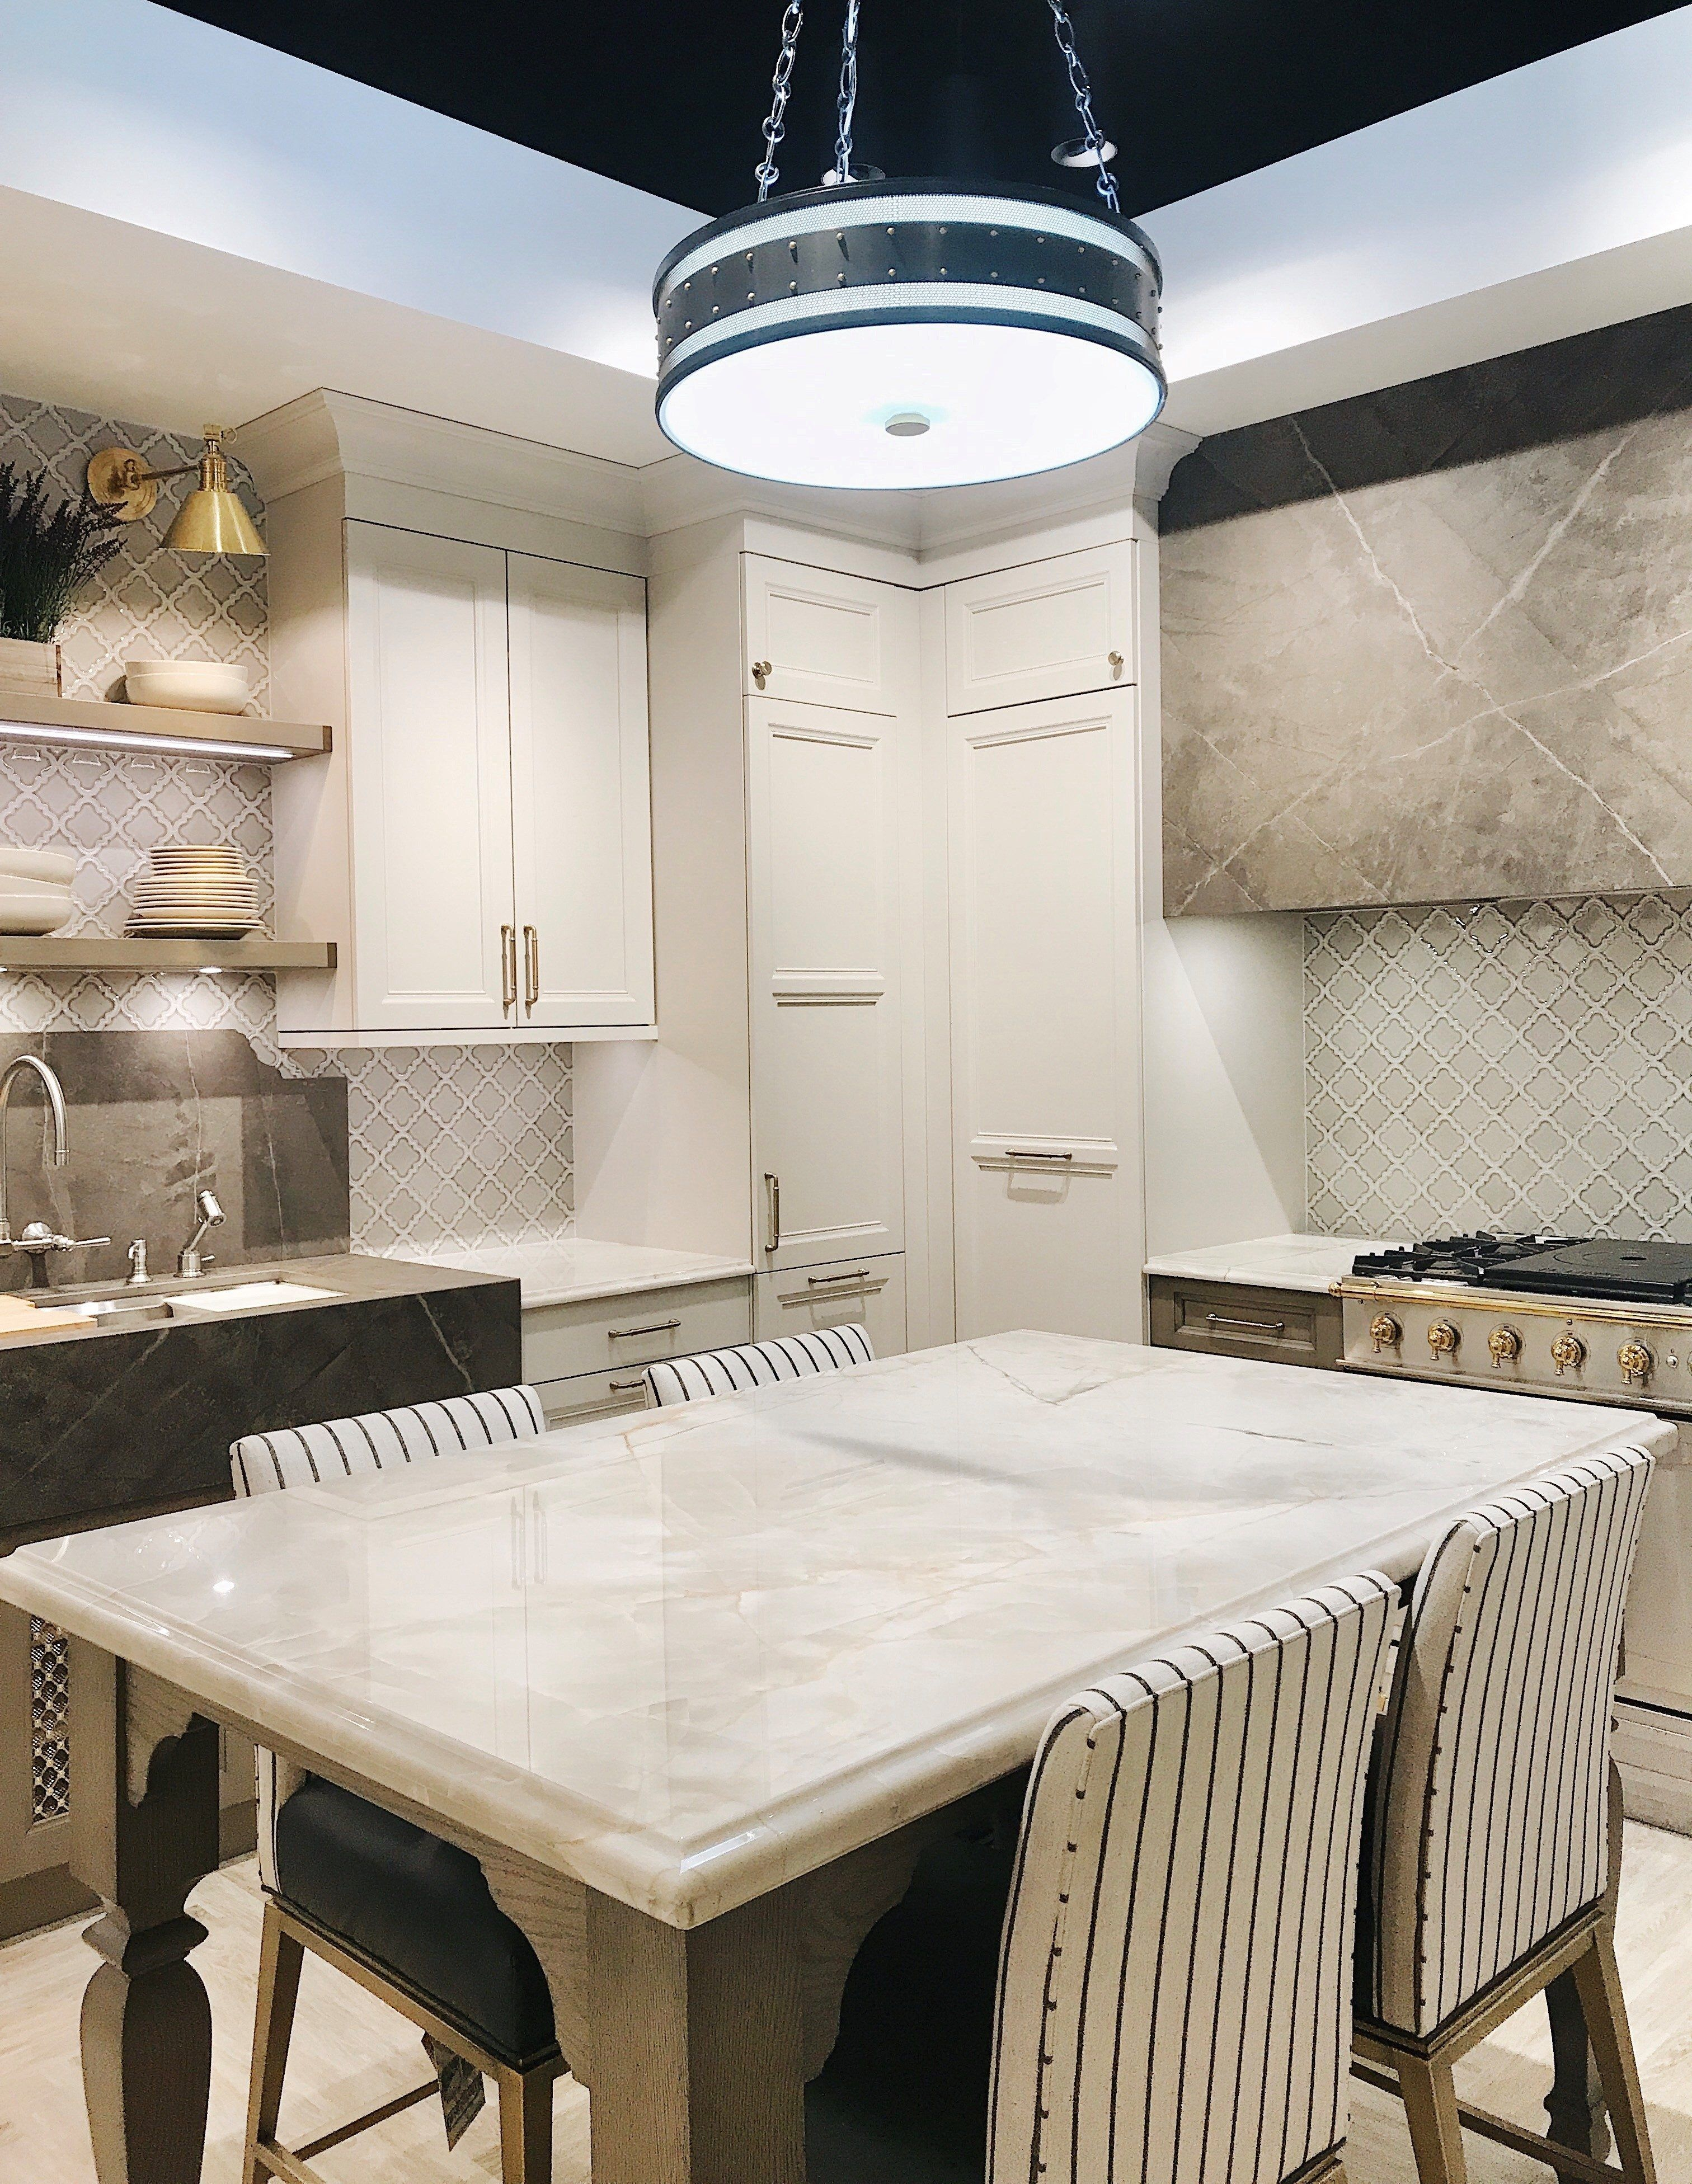 6 Kitchen Trends To Expect In 2020 In 2020 With Images Kitchen